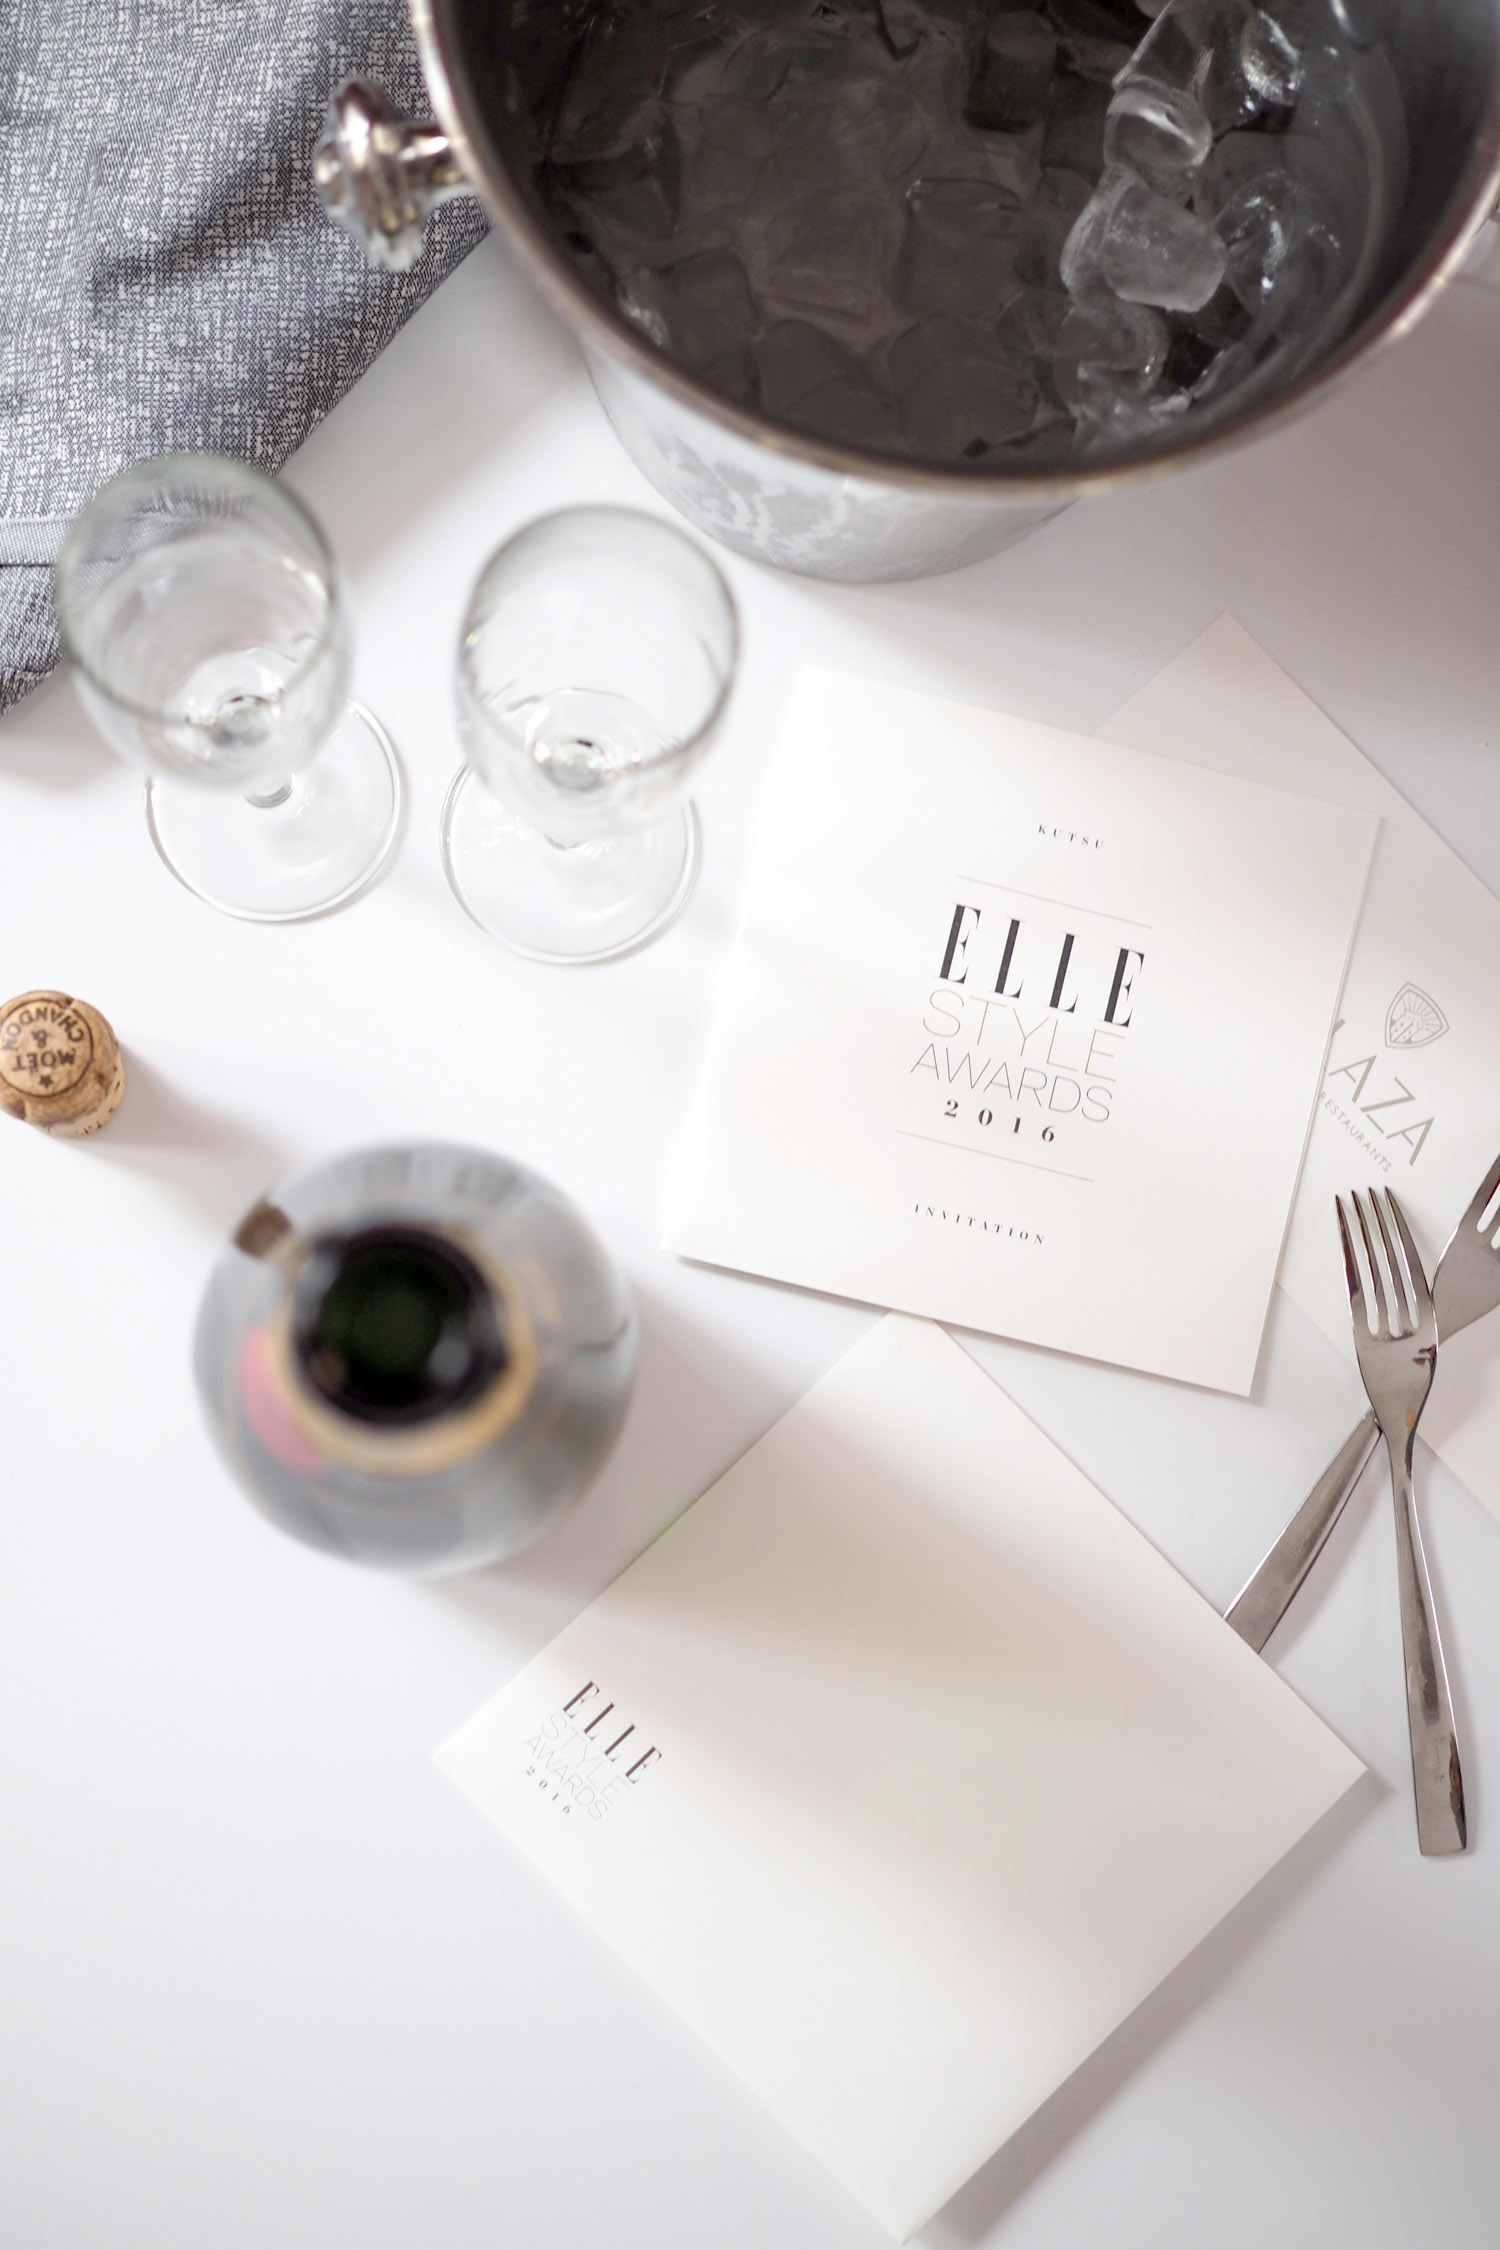 C and the city - ELLE Style Awards 2016 at Vanha Ylioppilastalo in Helsinki, Finland - read more on the blog: //www.idealista.fi/charandthecity/2016/10/22/elle-style-awards-2016-preparty